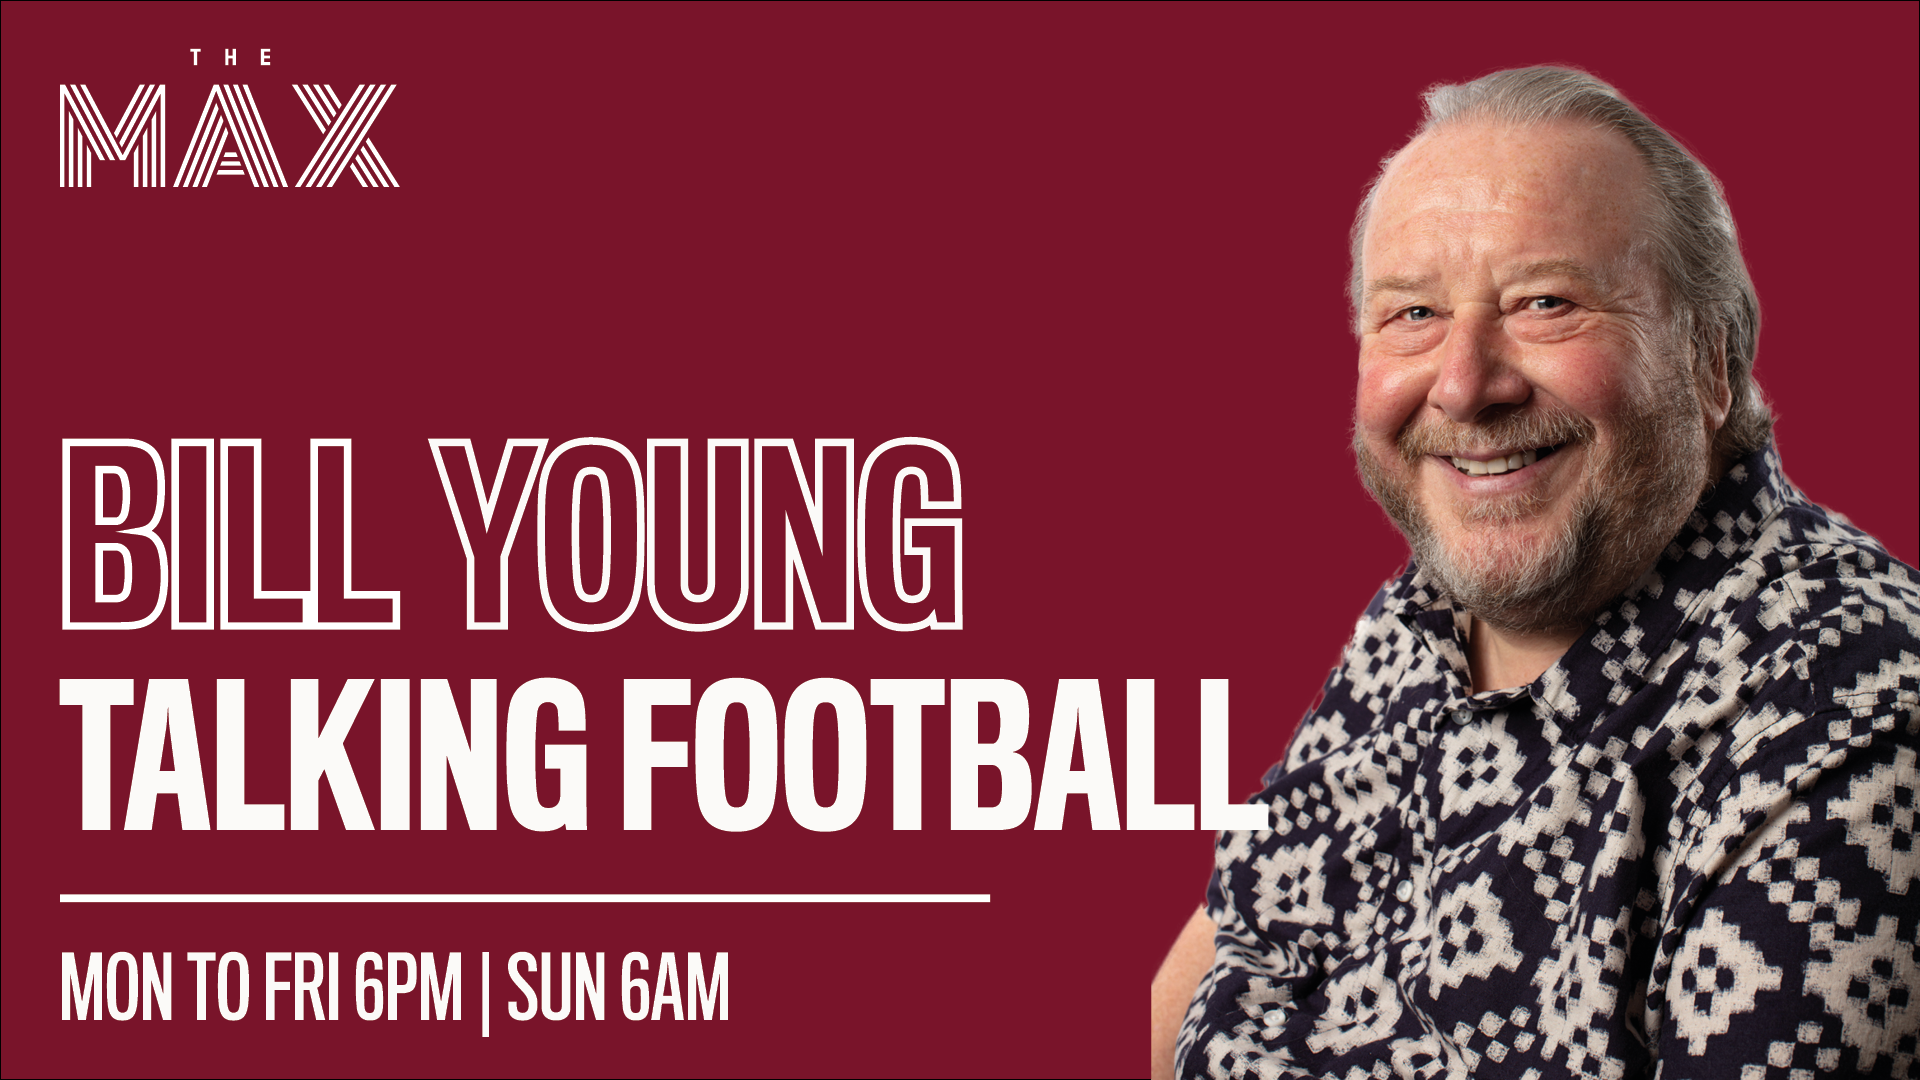 Talking Football with Bill Young - Friday 29th January